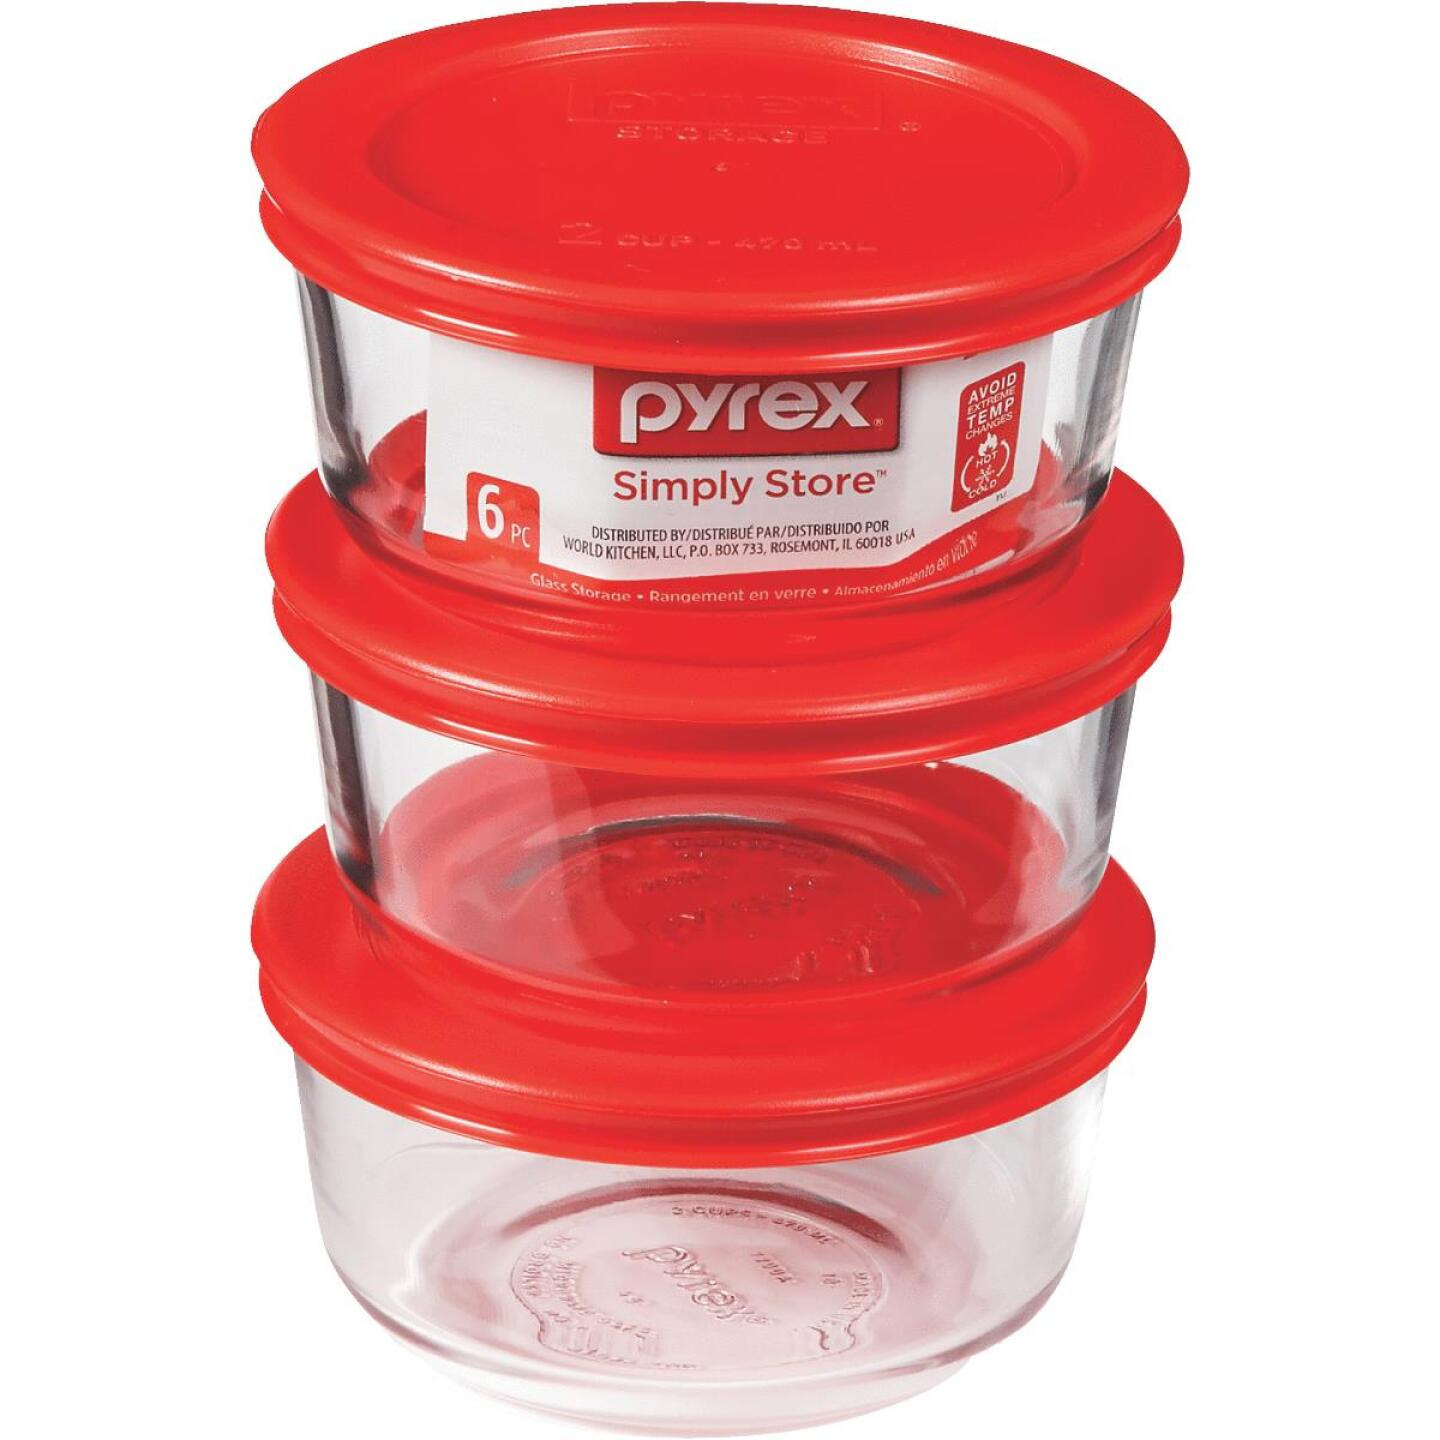 Pyrex Simply Store 2-Cup Glass Storage Container Set with Lids (6-Piece) Image 1